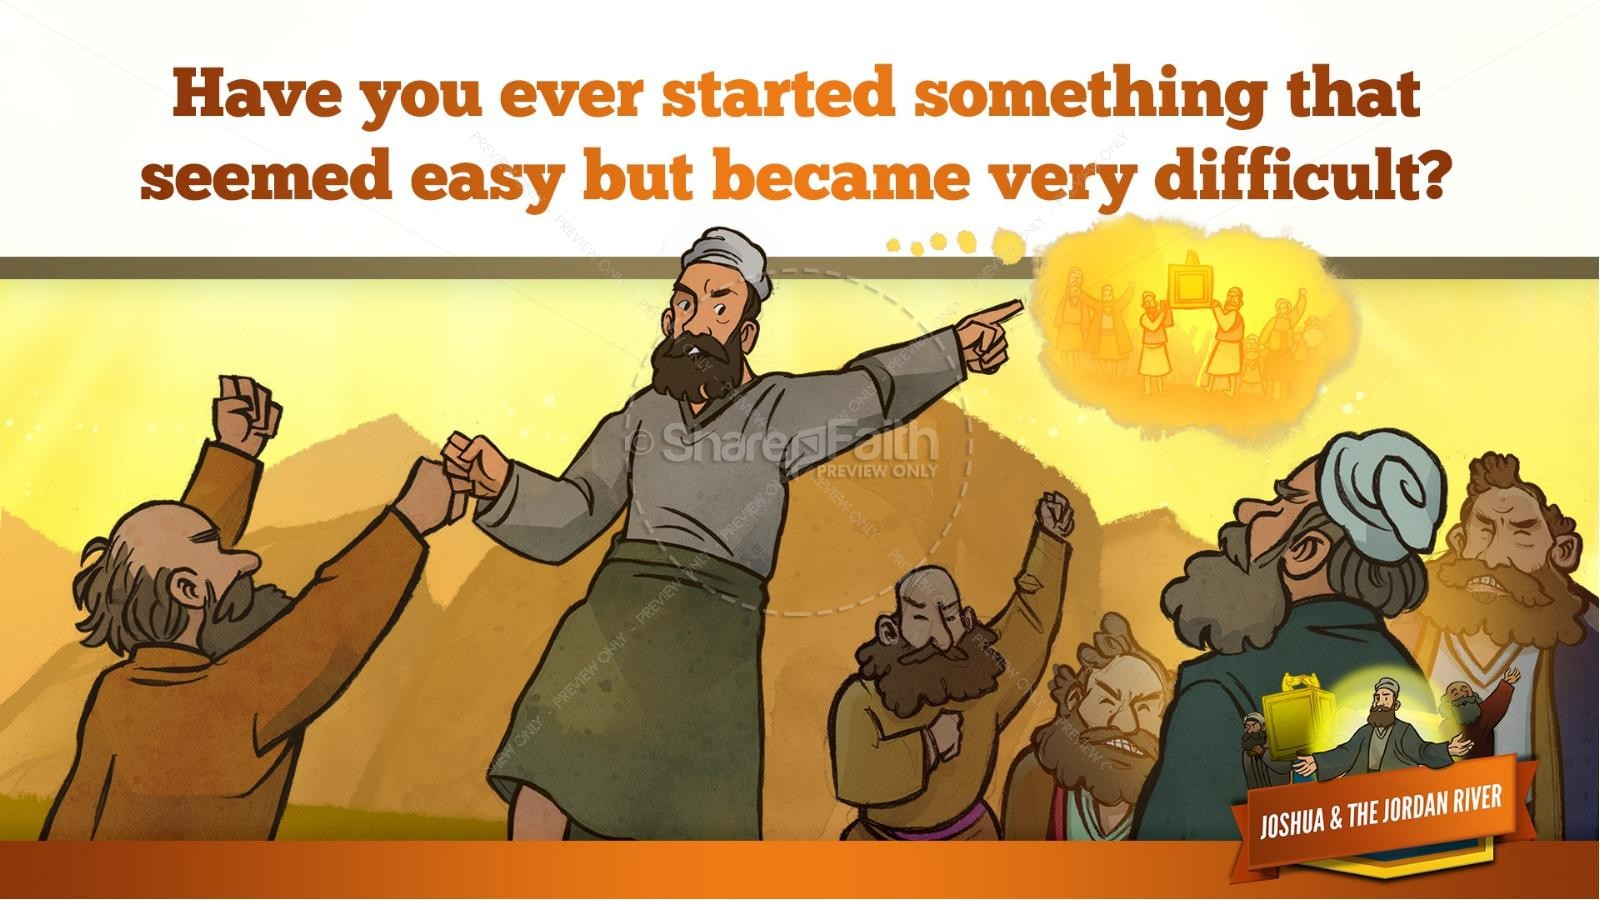 Joshua 3 Crossing the Jordan River Kids Bible Story | slide 17